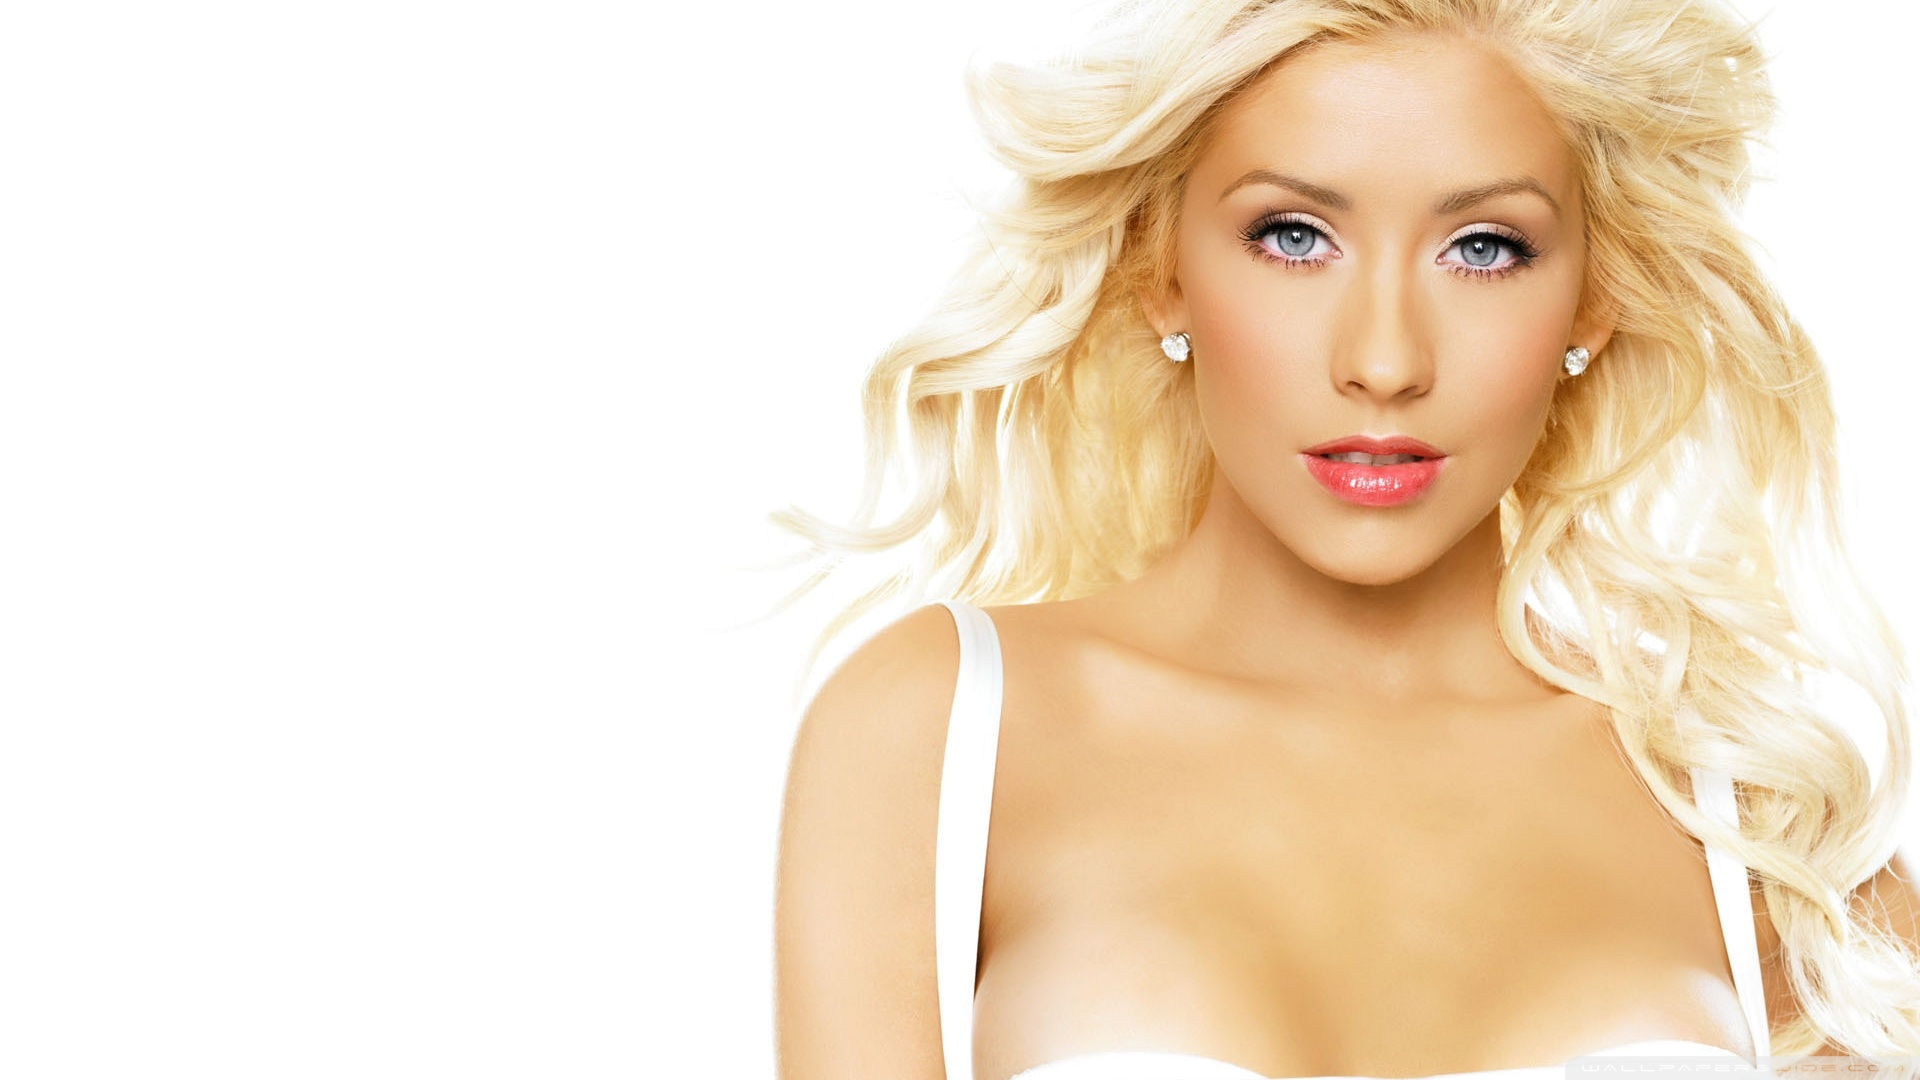 christina aguilera hot wallpapers wallpaper images 1920x1080 1920x1080